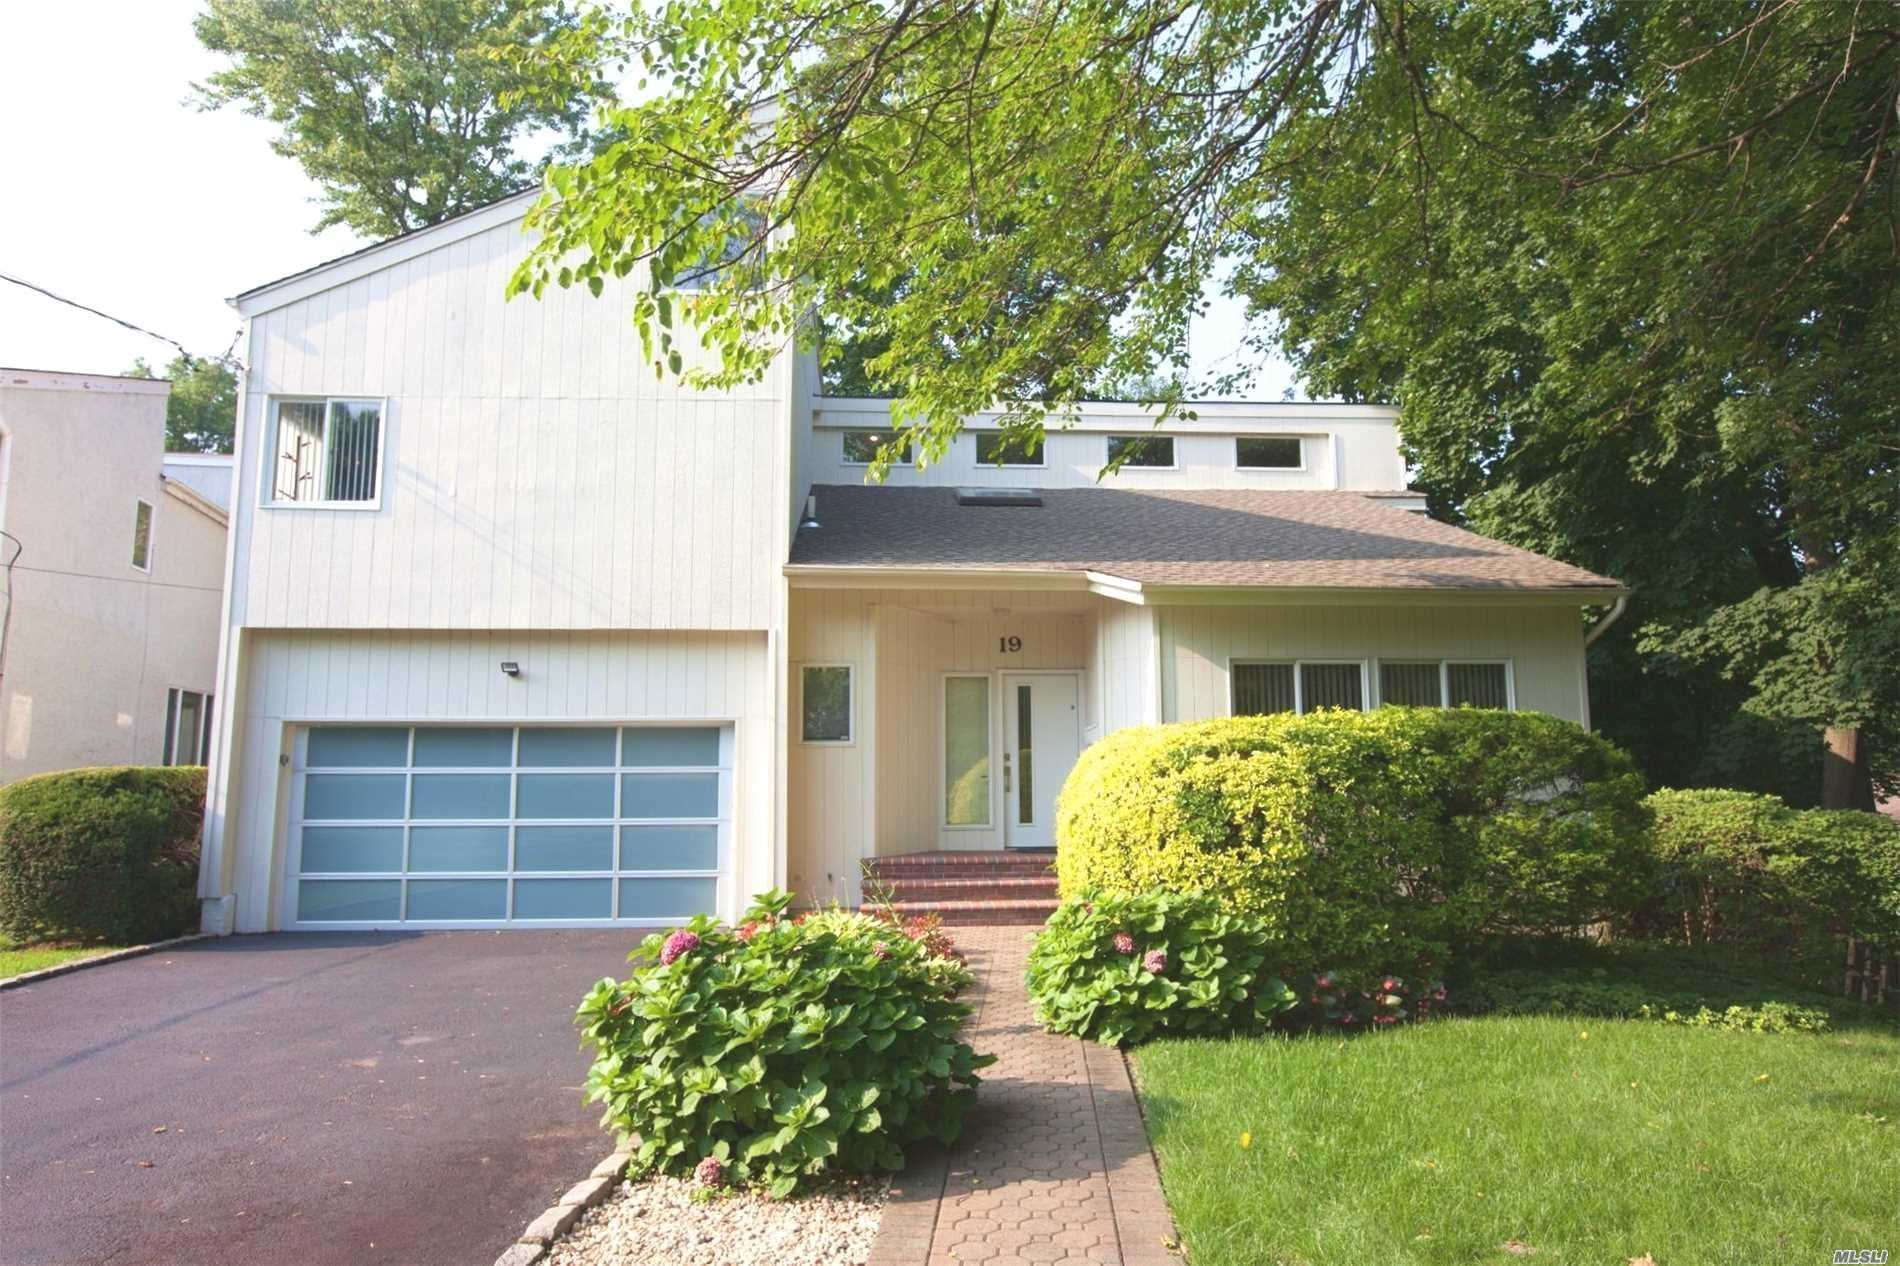 Southern Exposure To This One Of Kind Sun Drenched Contemporary 4 Bedroom Estate! Hard Wood Floors Throughout, Whole House Generator, New Custom Glass Garage Doors, New Cac Sys, Full Finished Basement, Cedar Closet, New Hot Water Heater, Anderson Windows, Central Vacuum, Brick Fireplace, Three Skylights, 3 Decks In The Backyard Over Looking A Pristine Creek. Port Washington Lirr 25 Mins To Nyc. Award Winning Great Neck Schools! (Baker Elem & North Middle High) Close To Village W/ Rests, Shopping